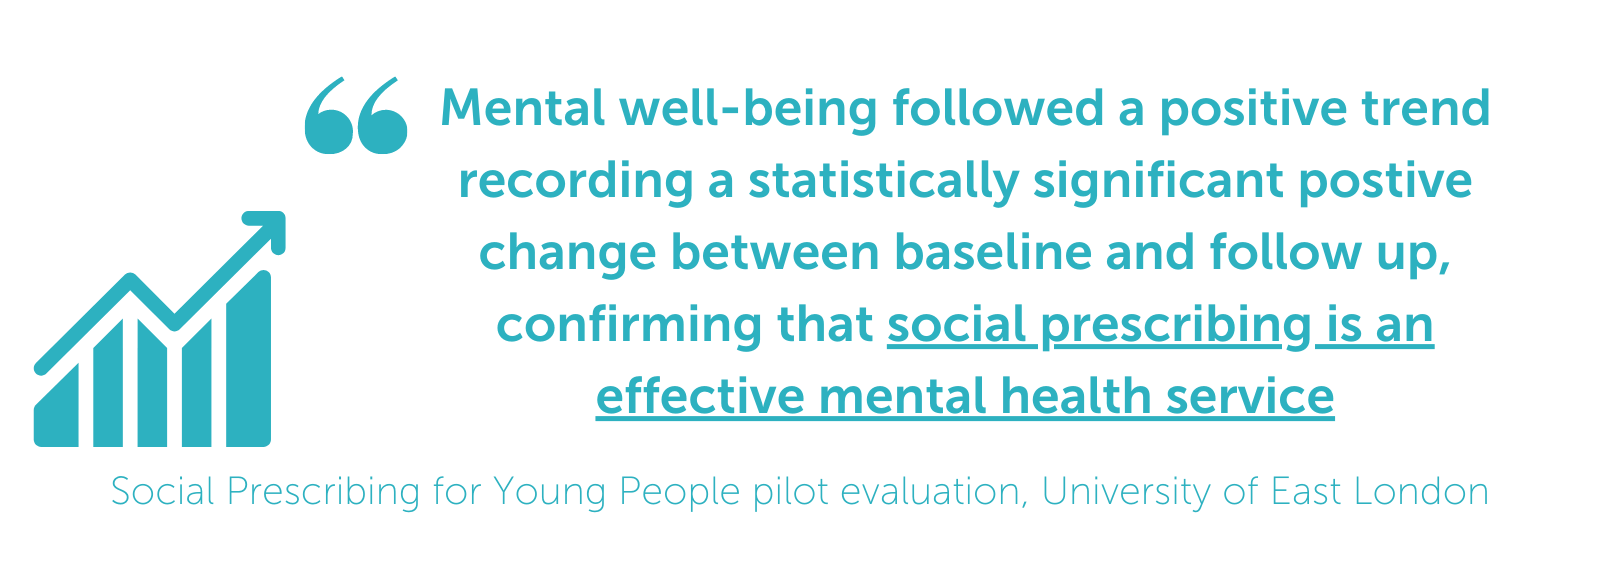 Mental well-being followed a positive trend recording a statistically significant positive change between baseline and follow up, confirming that social prescribing is an effective mental health service